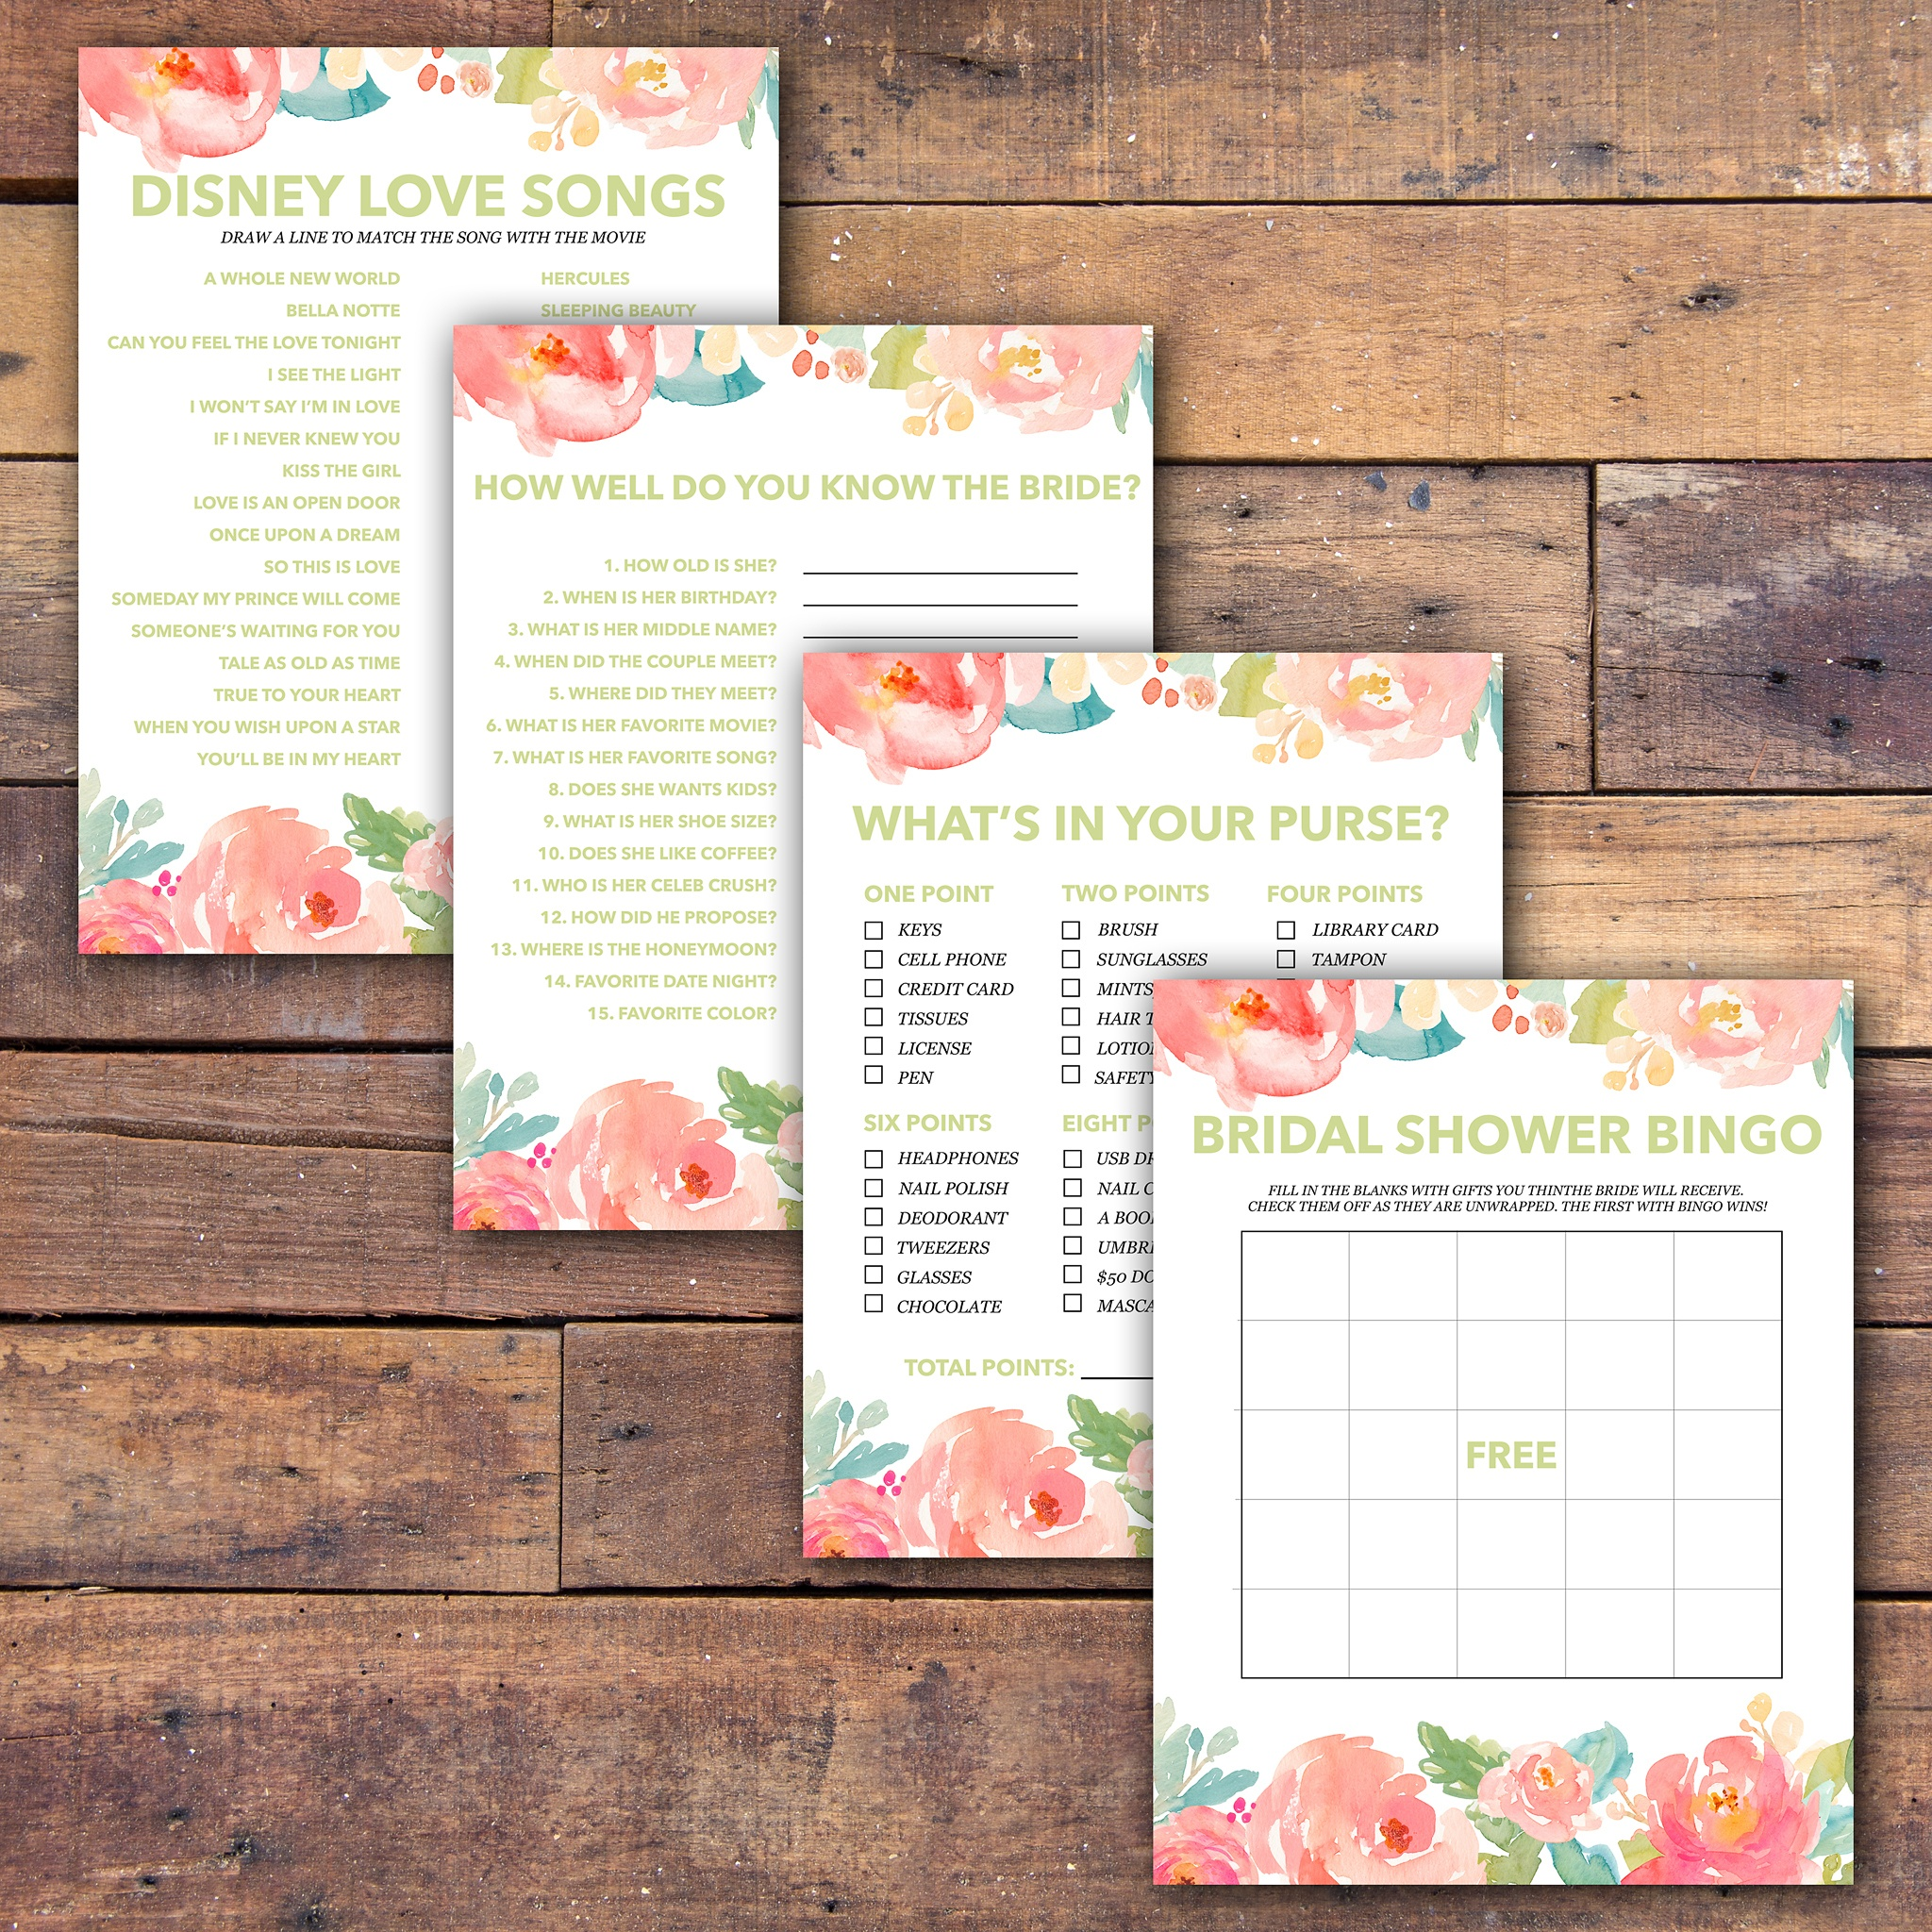 Bridal Shower Games Free Printable - - Samantha Jean Photograhy - Free Printable Household Shower Games